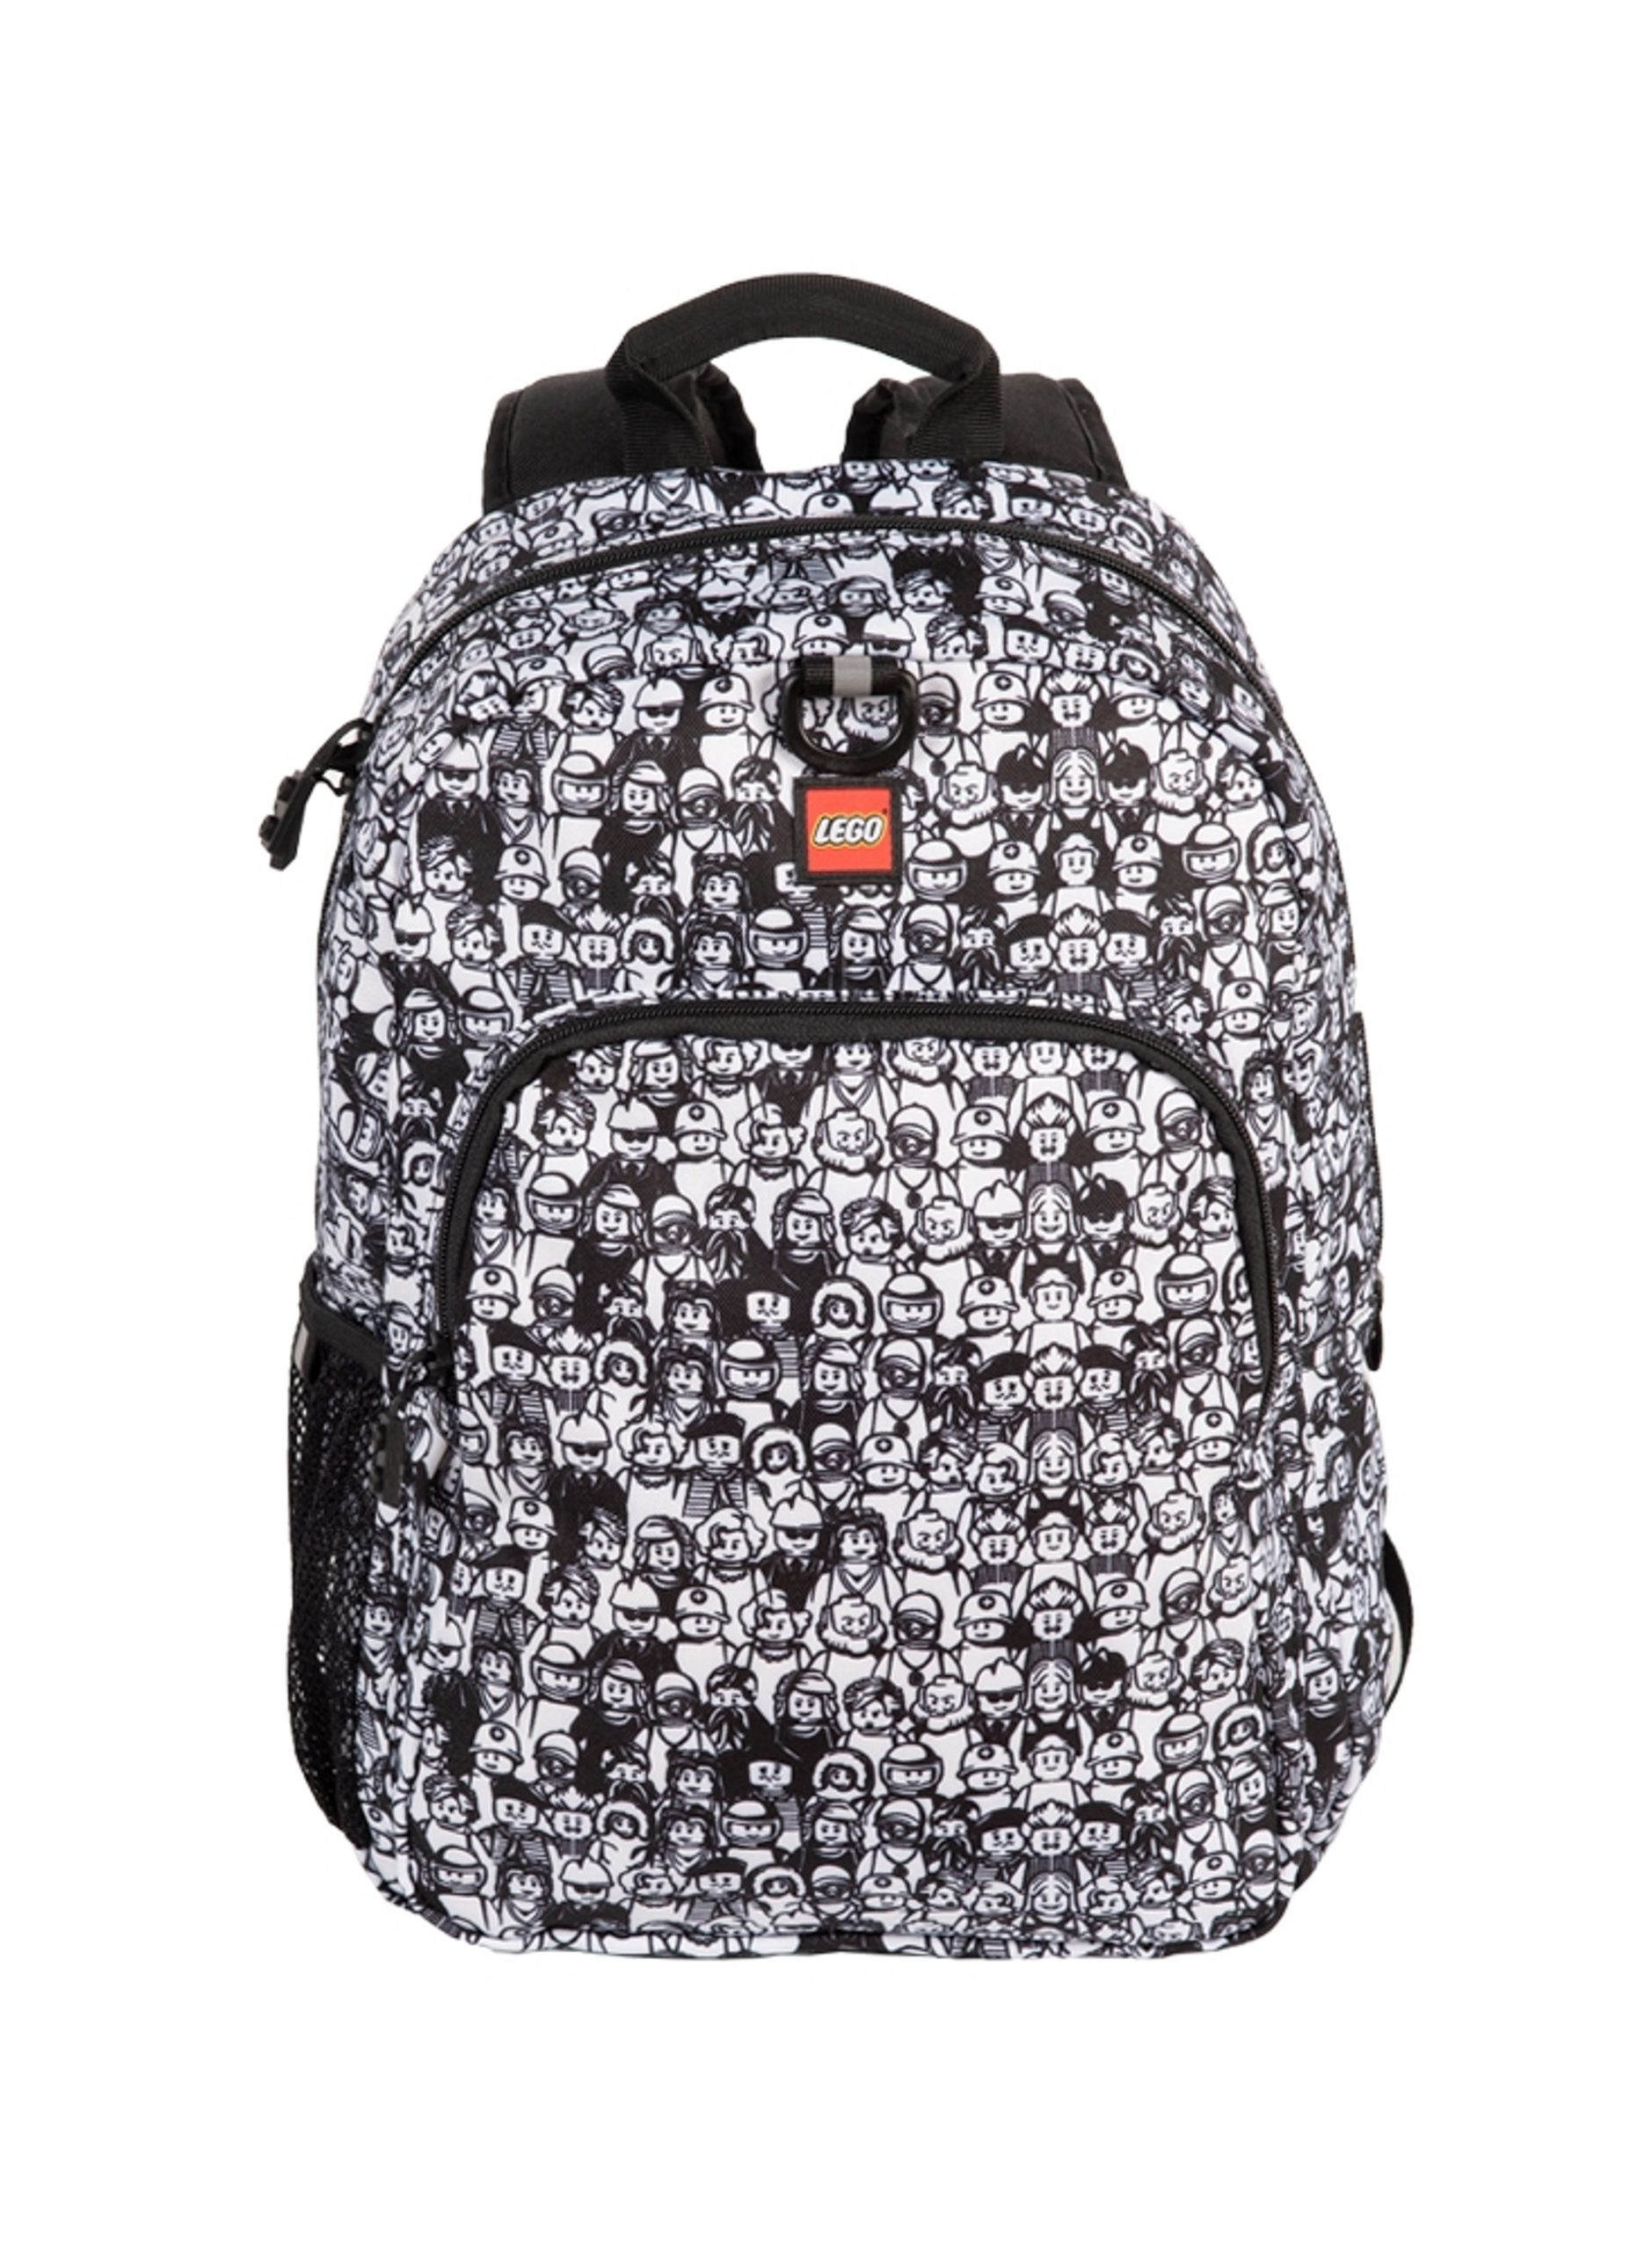 lego 5005811 minifigure color me heritage classic backpack scaled